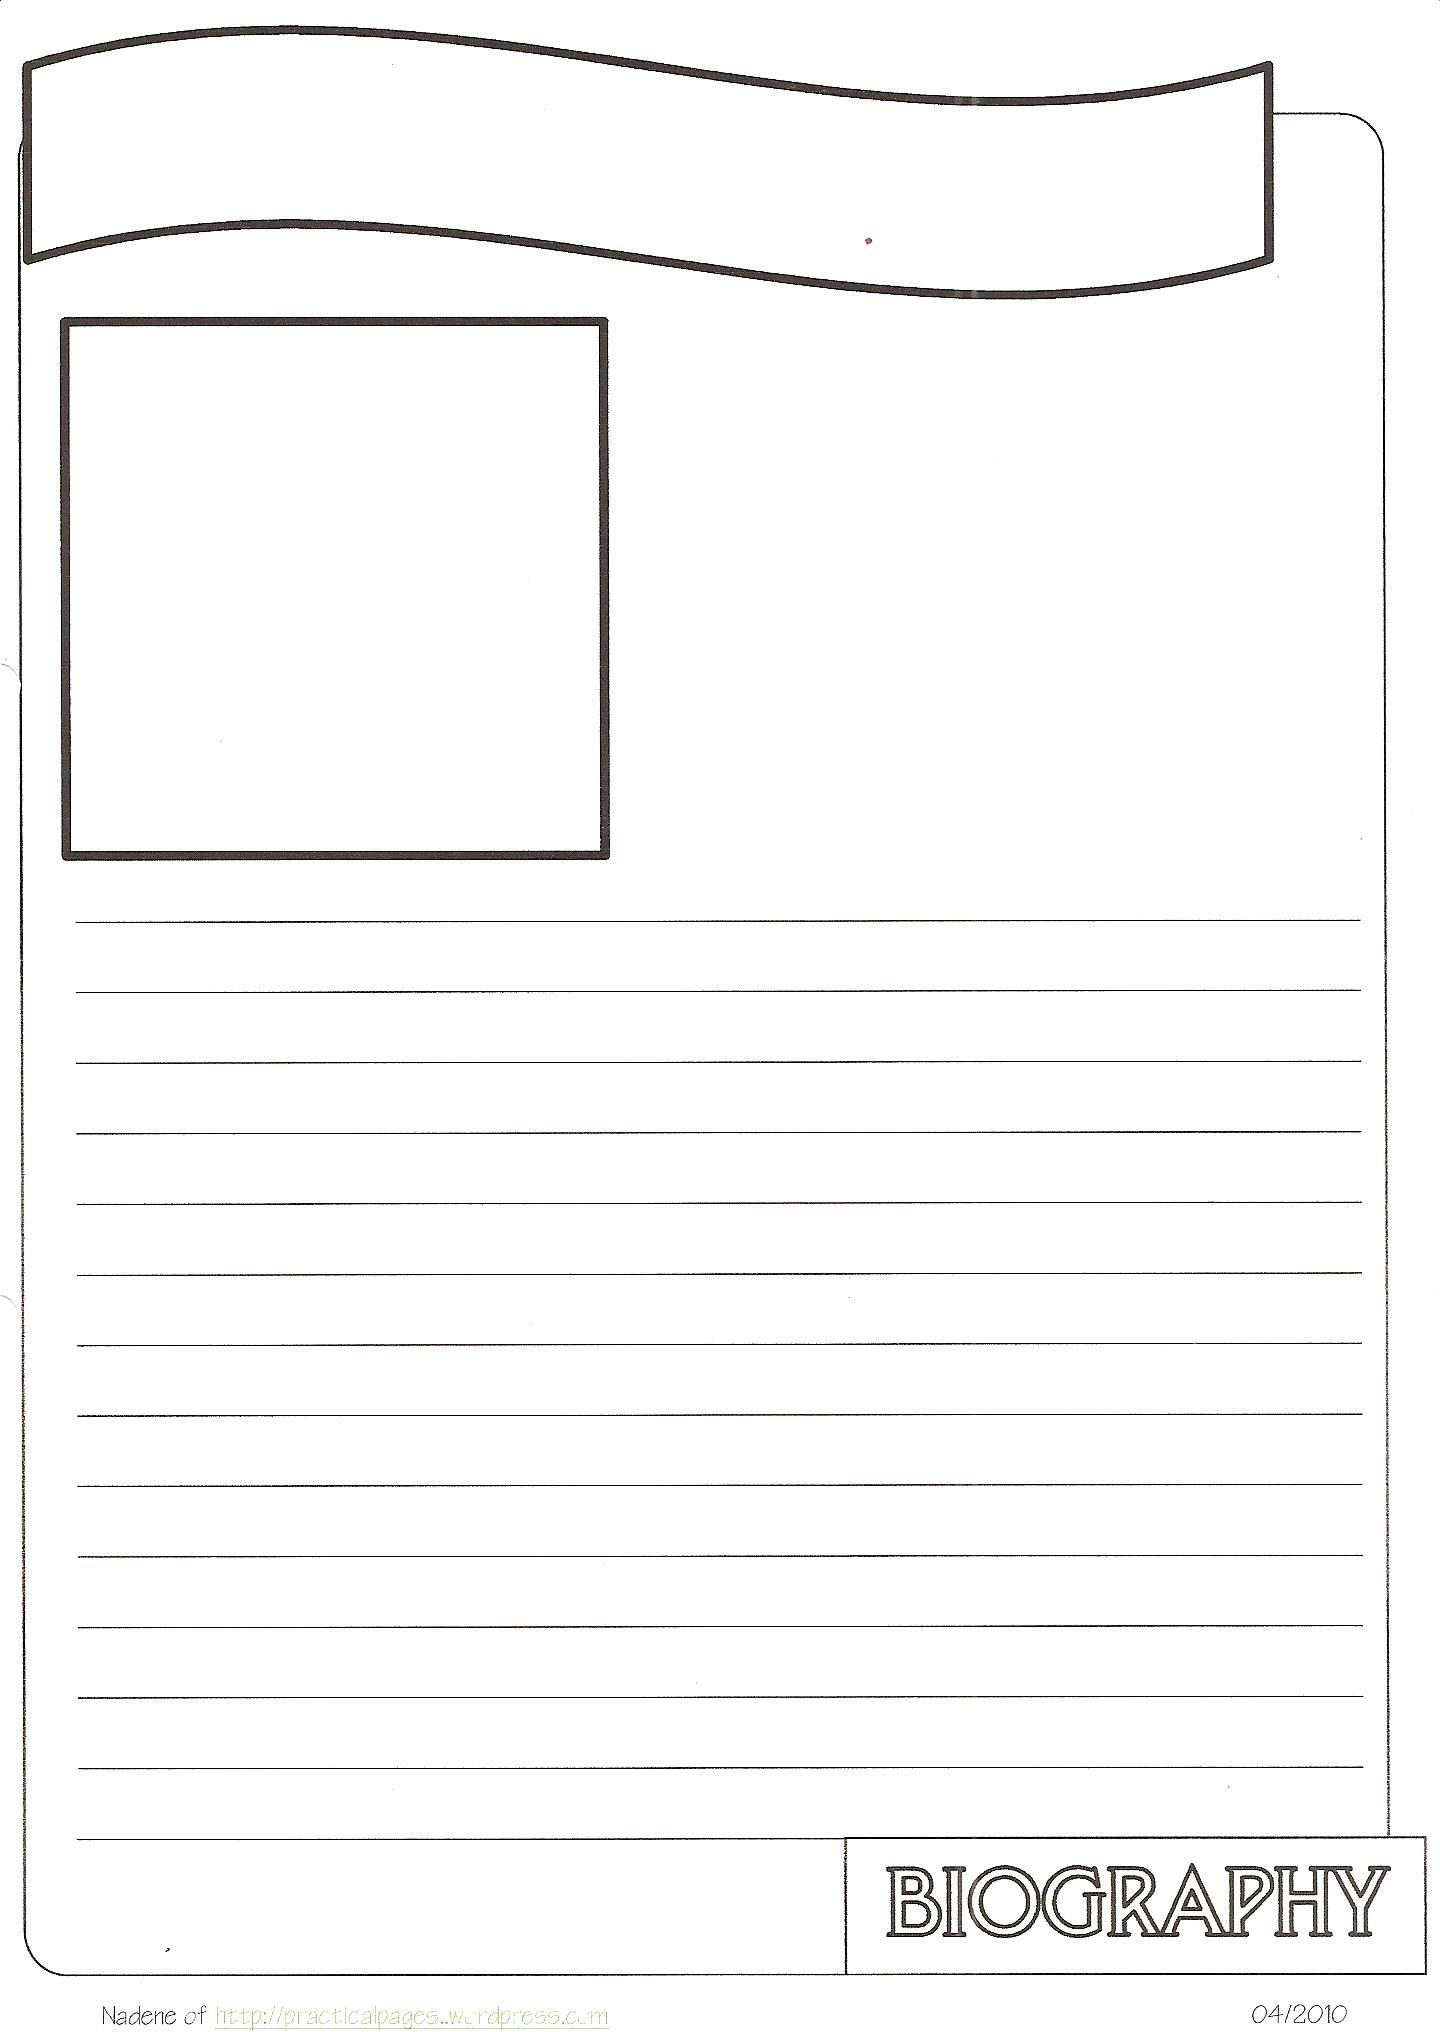 hight resolution of New Biography Notebook Page Templates   Biography template